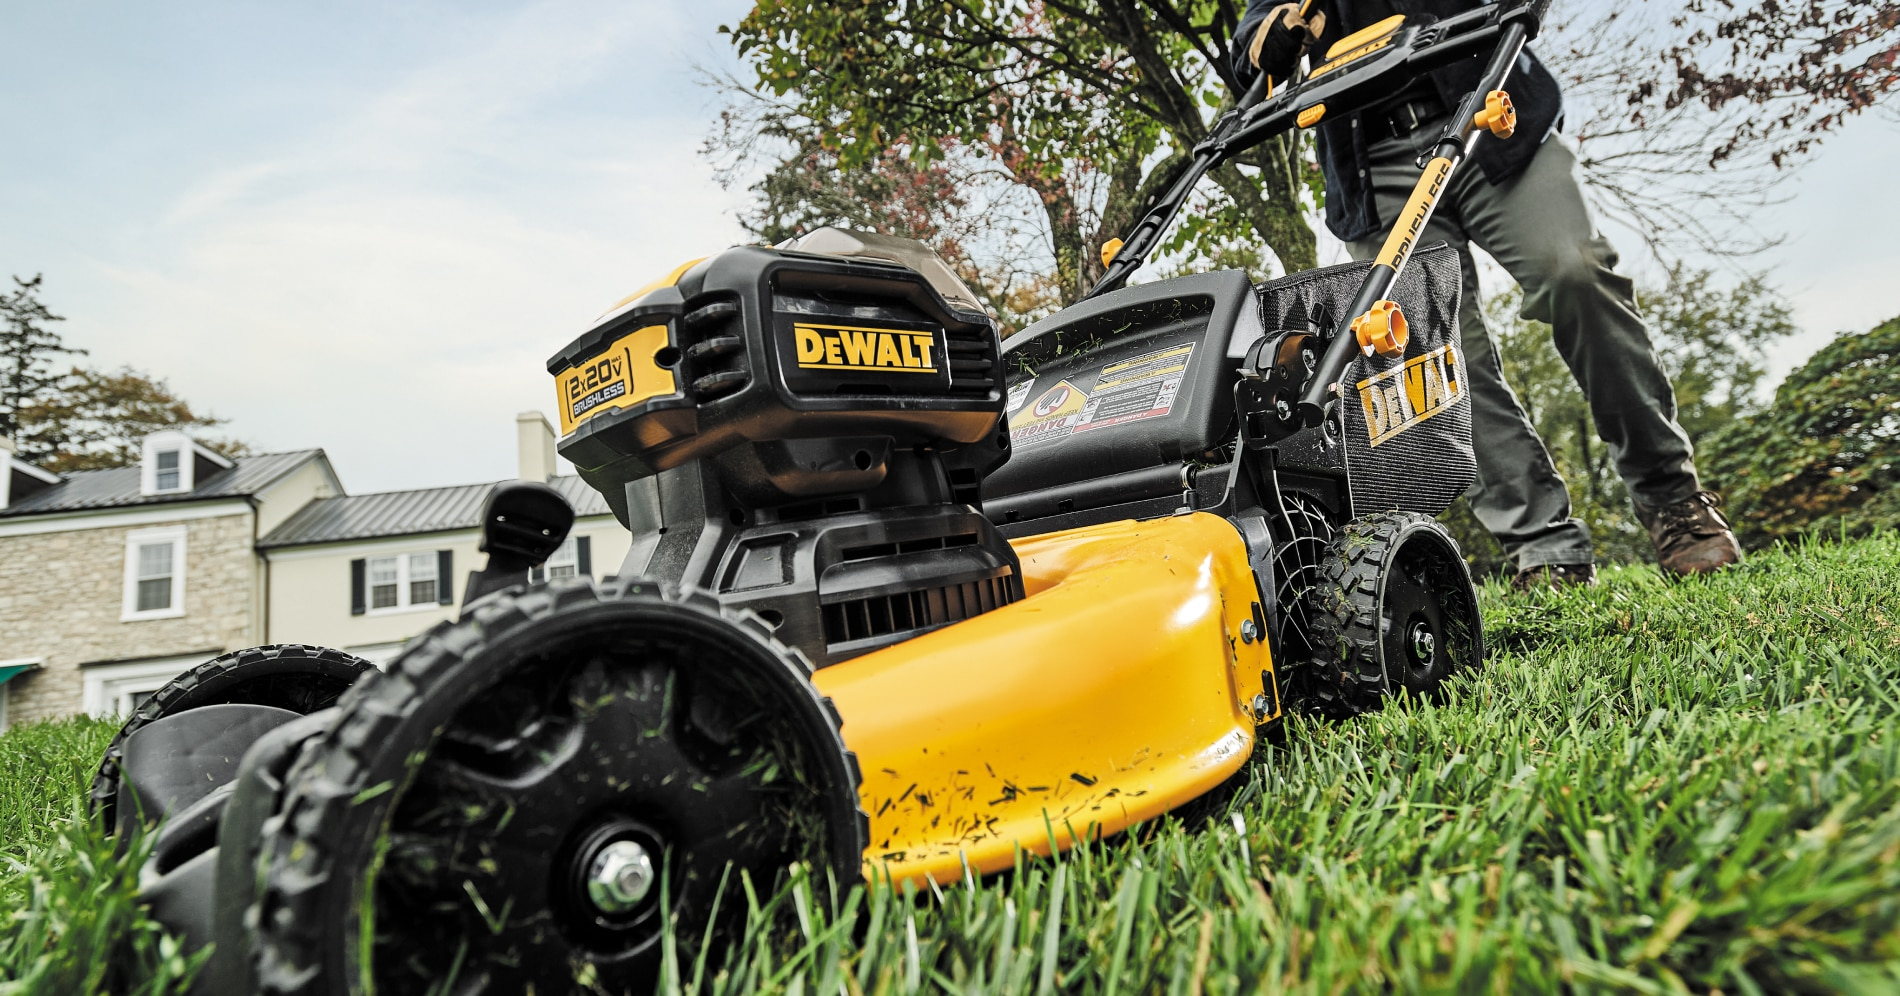 dewalt 2x20v max* 21-1/2 in. brushless cordless push mower (dcmwp233u2-ca) mowing grass